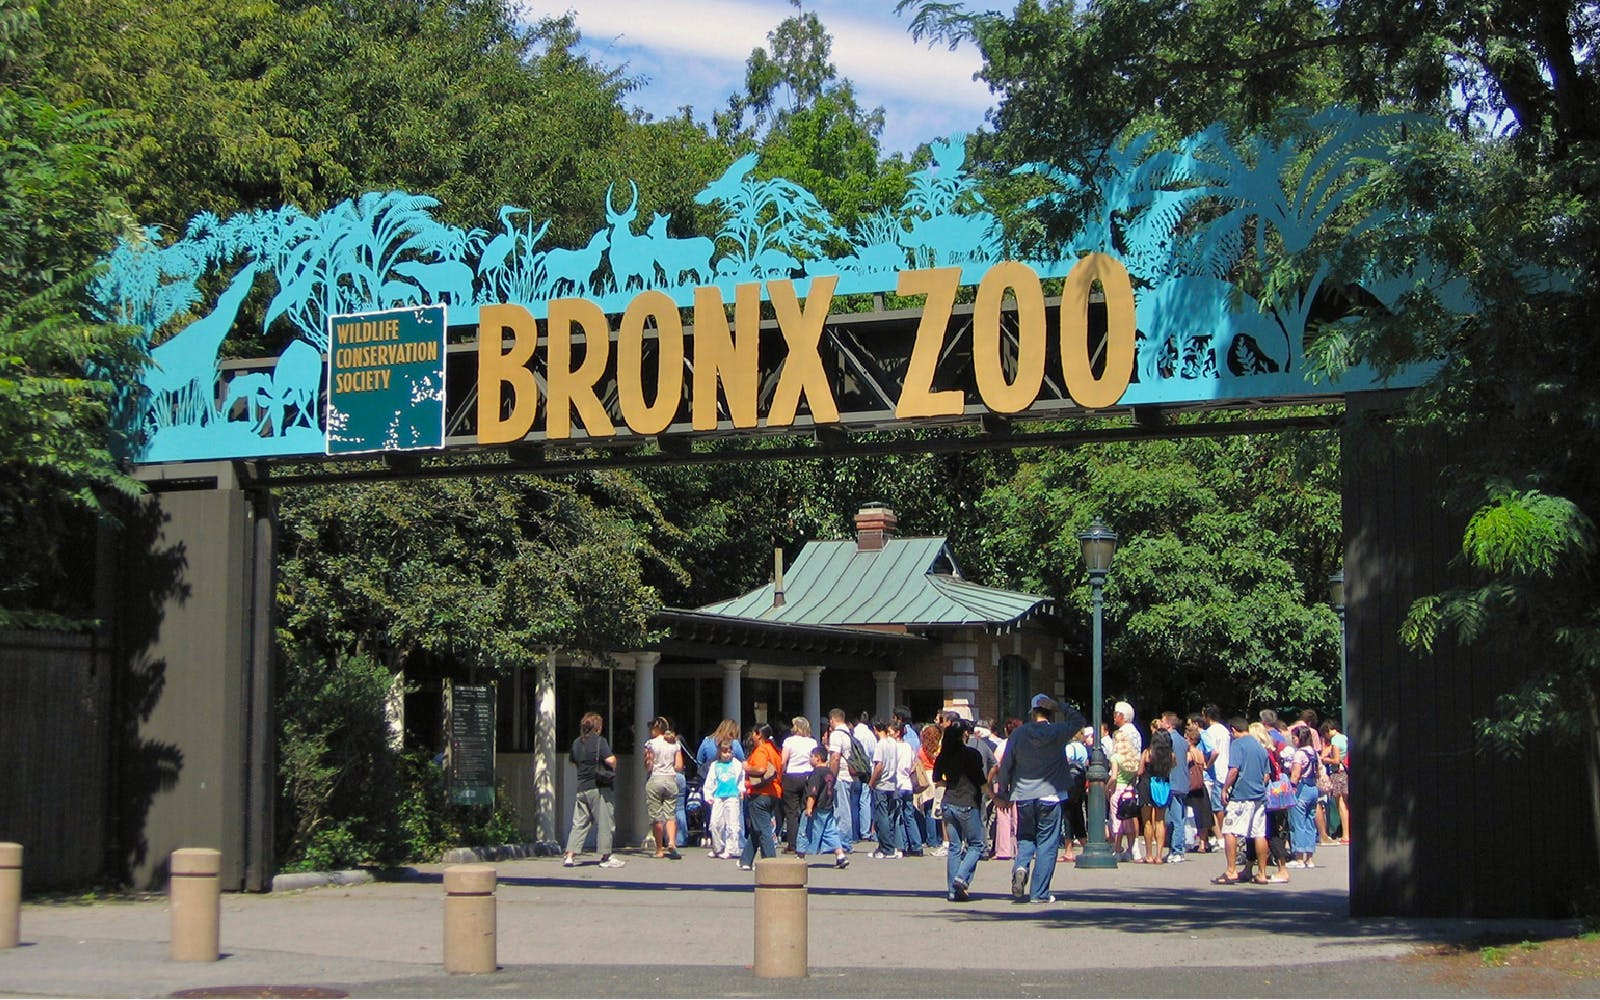 hop-on-hop-off tour of the bronx-3